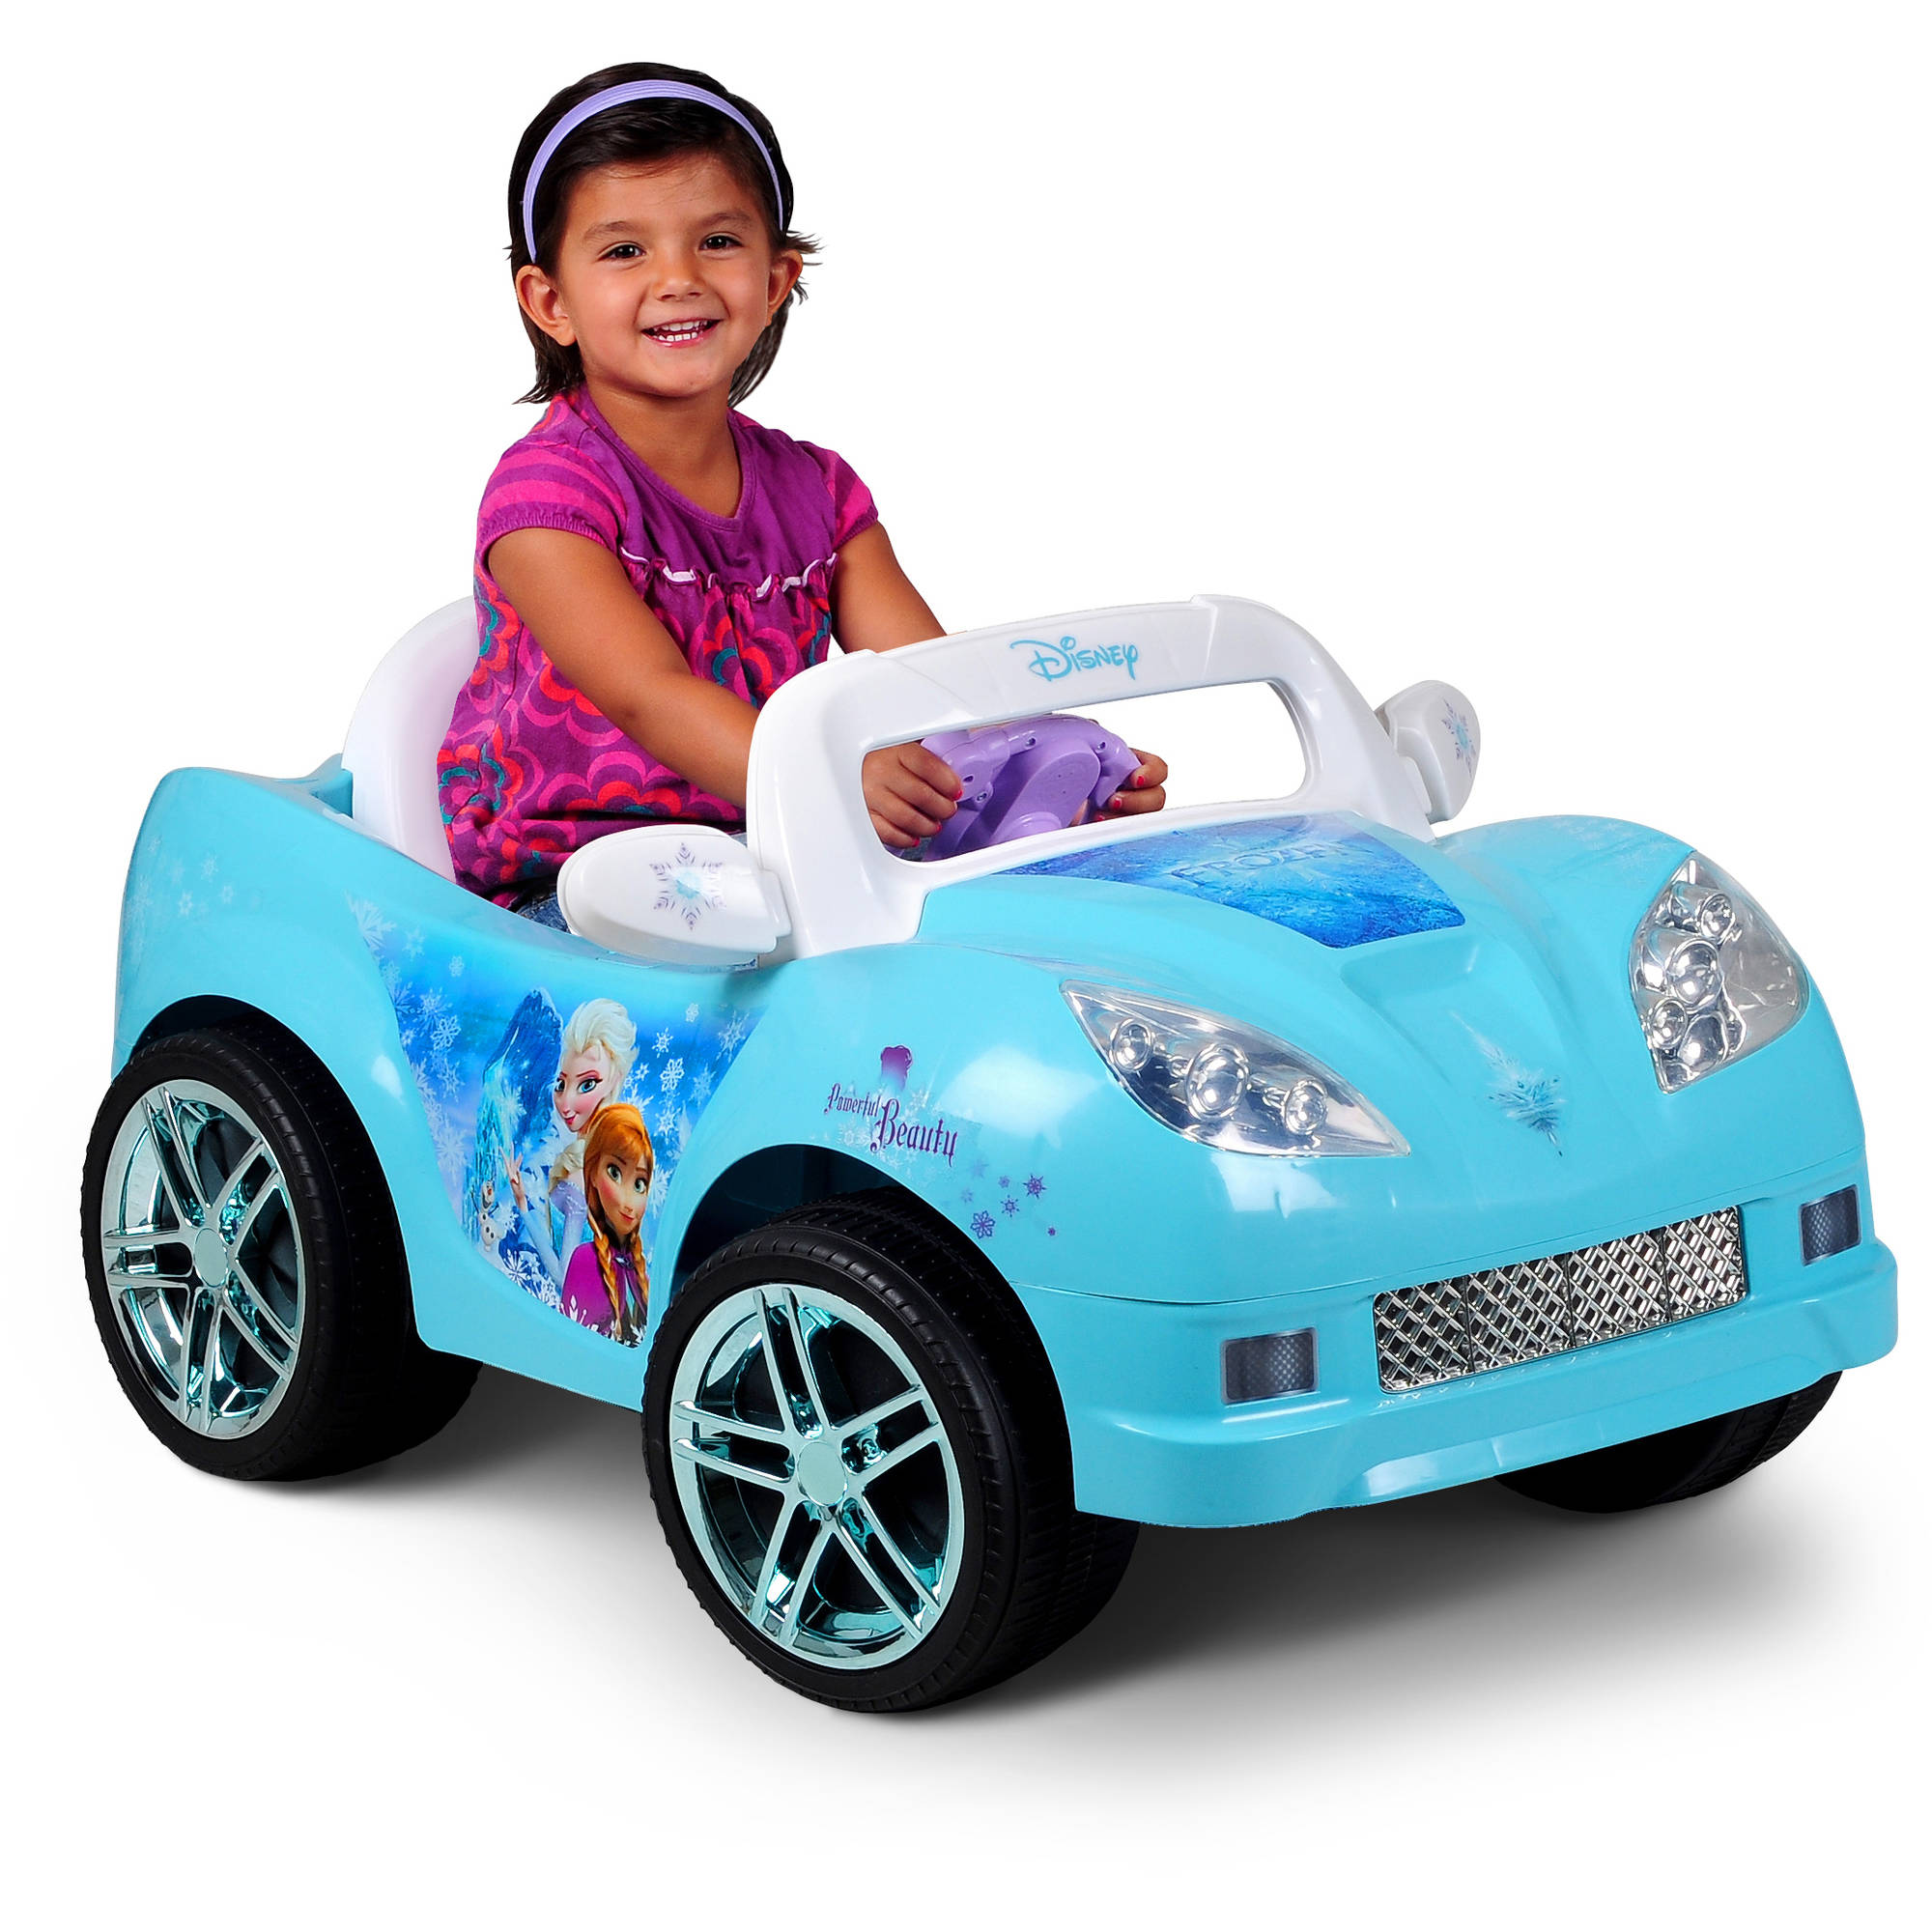 Motor Cars for toddlers Inspirational Disney Frozen Convertible Car 6 Volt Battery Powered Ride On